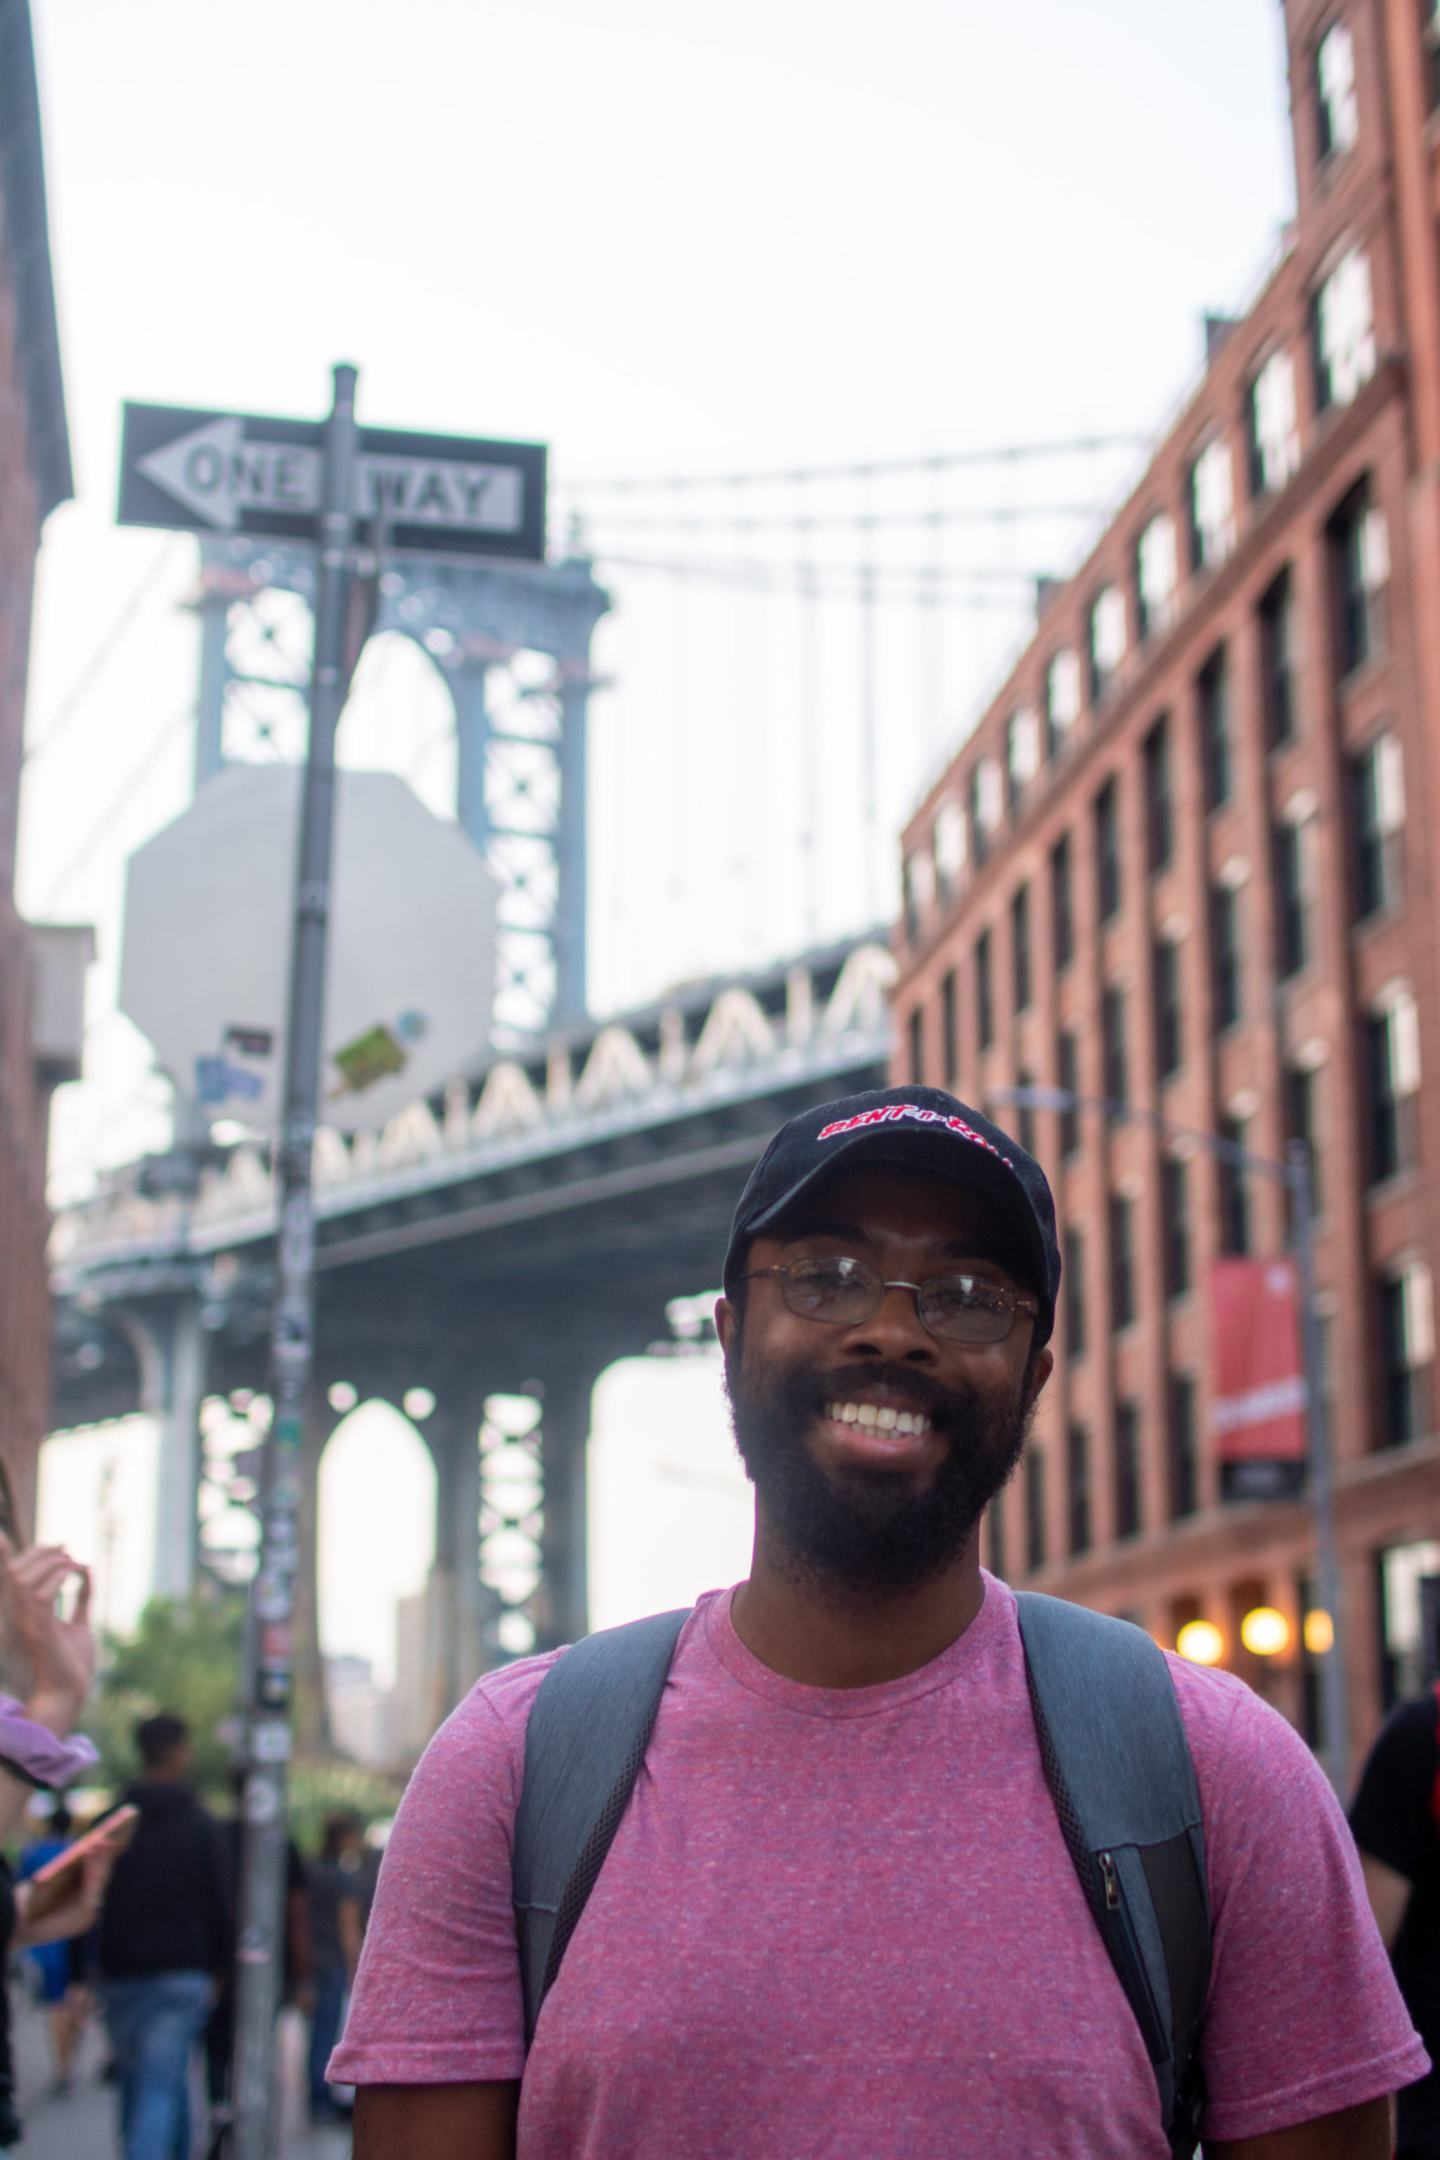 Chris standing in front of the Manhattan Bridge in New York